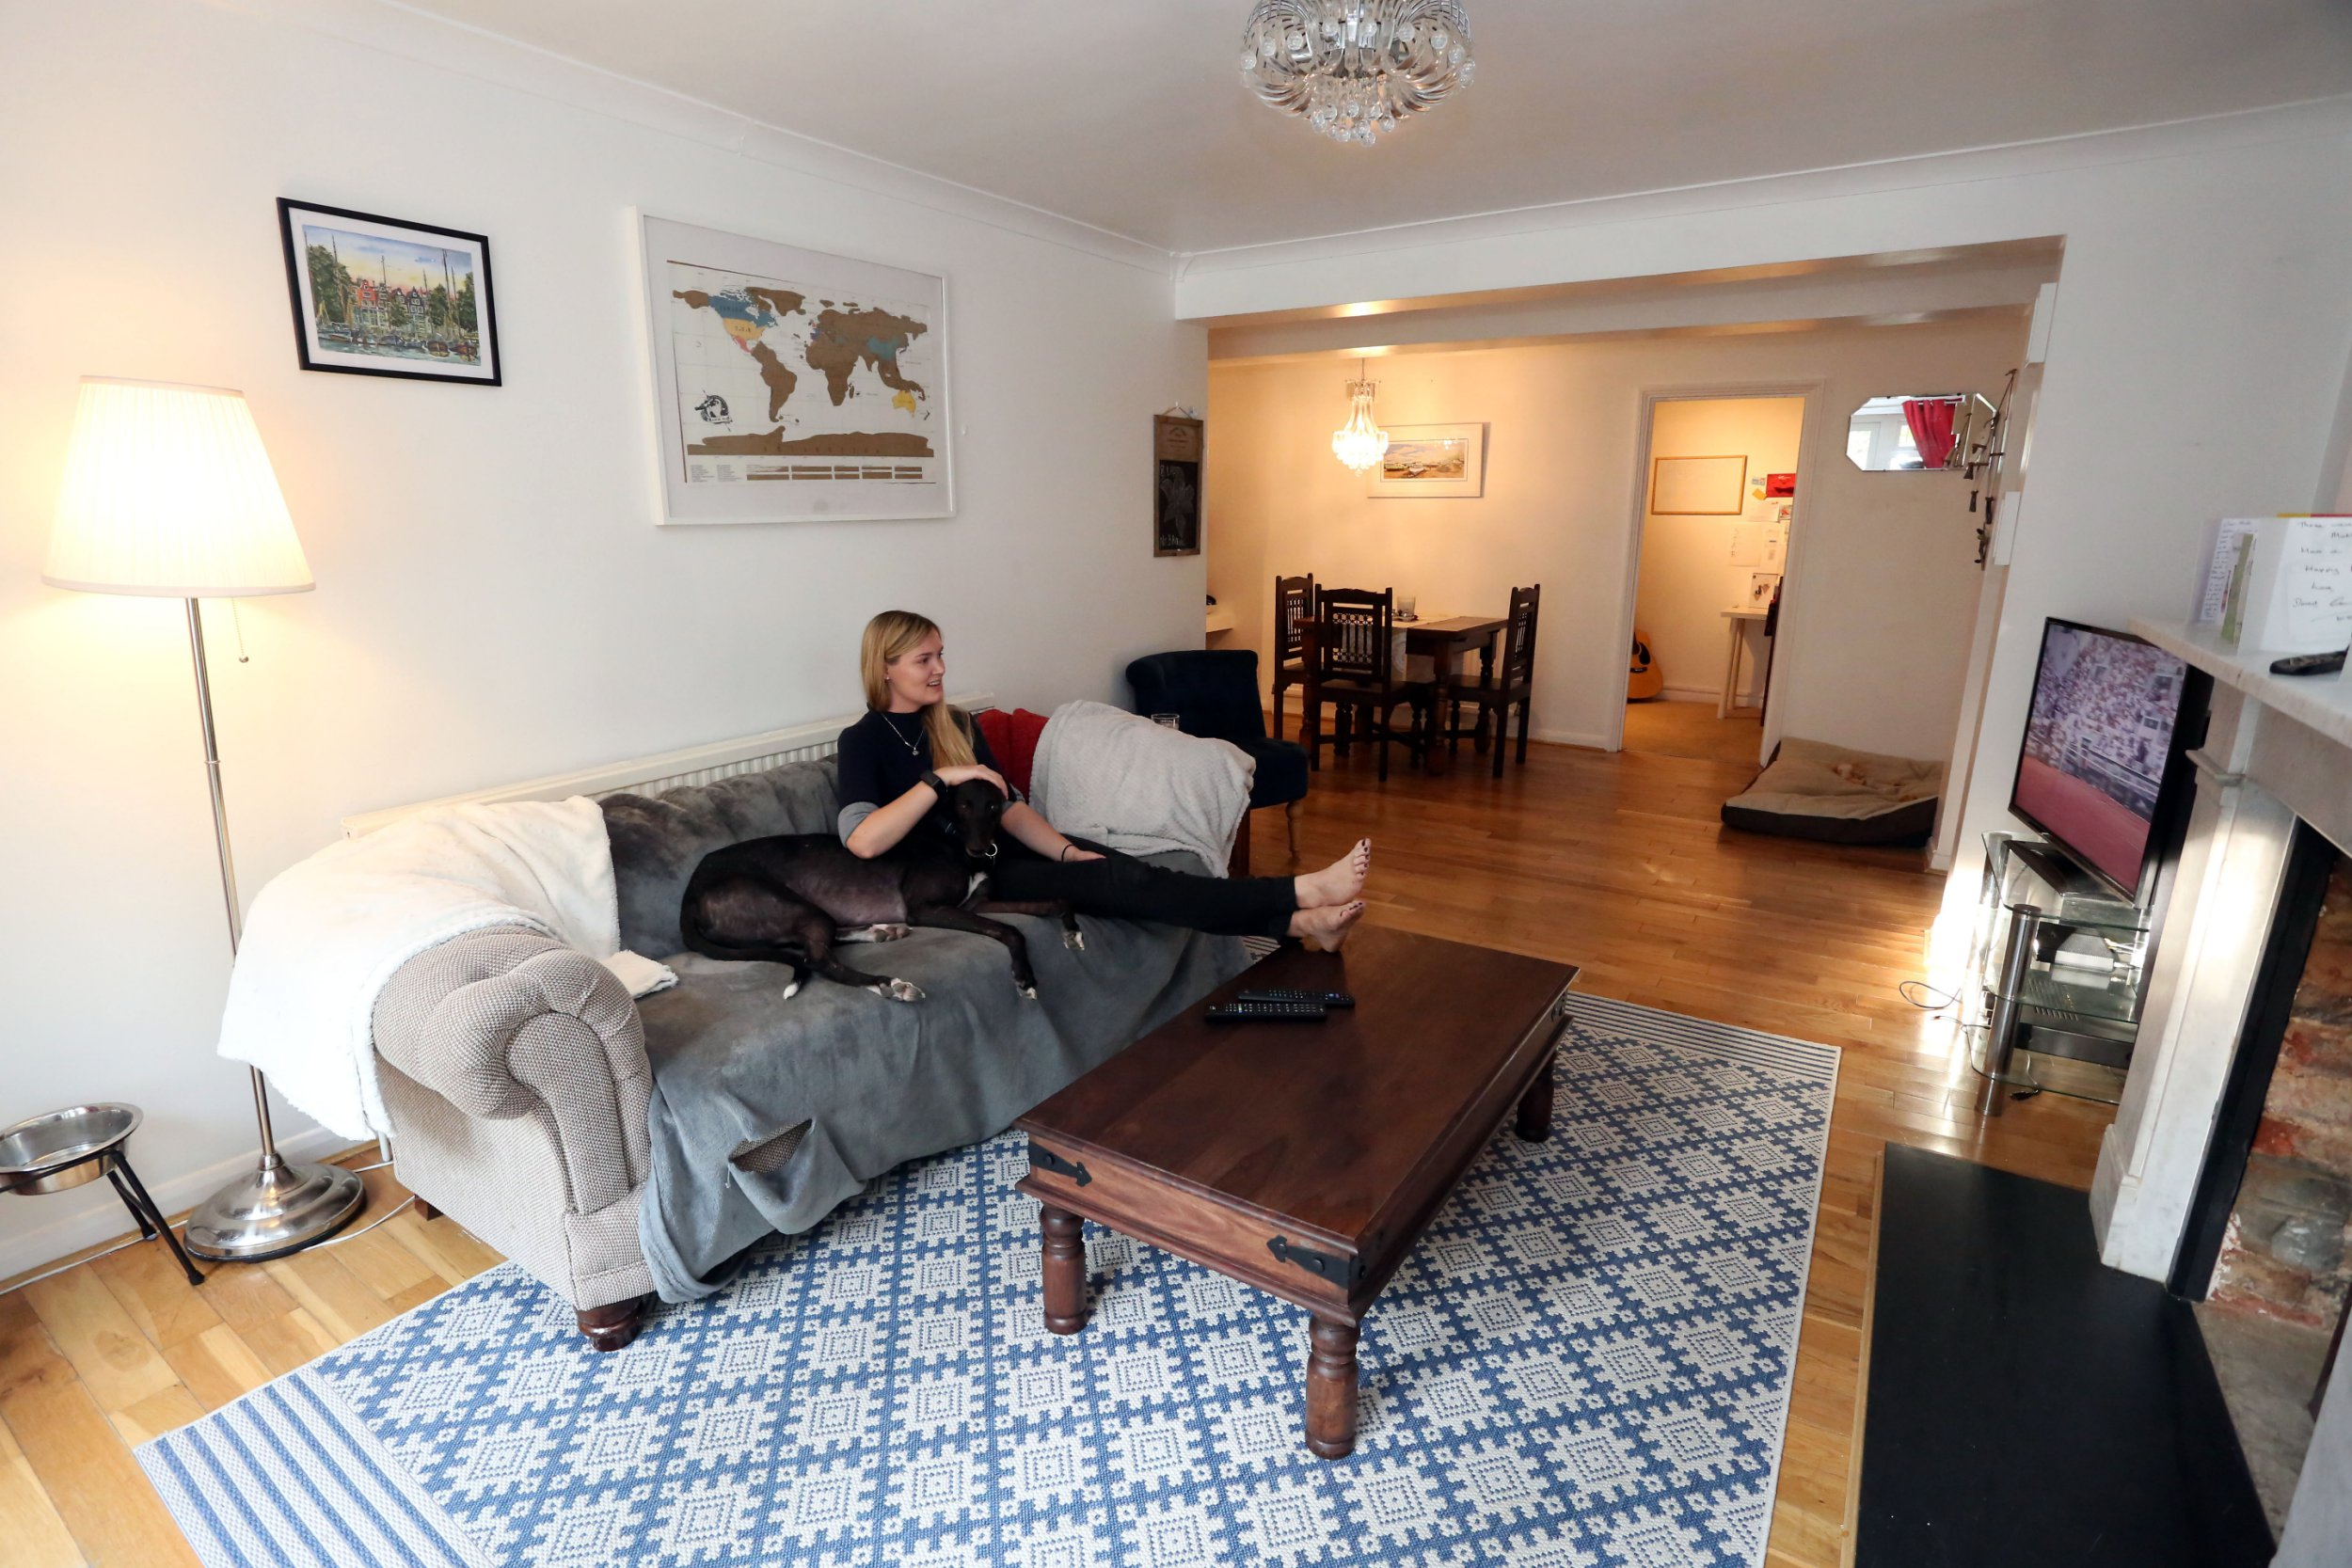 LONDON, UNITED KINGDOM, JUNE 6TH 2018. WHAT I RENT CASE STUDY: Tenant Samantha 'Sammy' Hull is pictured with her Greyhound Koda in the living room of her two bedroom flat which she shares with her boyfriend Matt Preece in Gispy Hill, London, United Kingdom, June 6th 2018. Samantha and Matt pay ?1625 a month excluding bills and council tax. Photo credit: Susannah Ireland